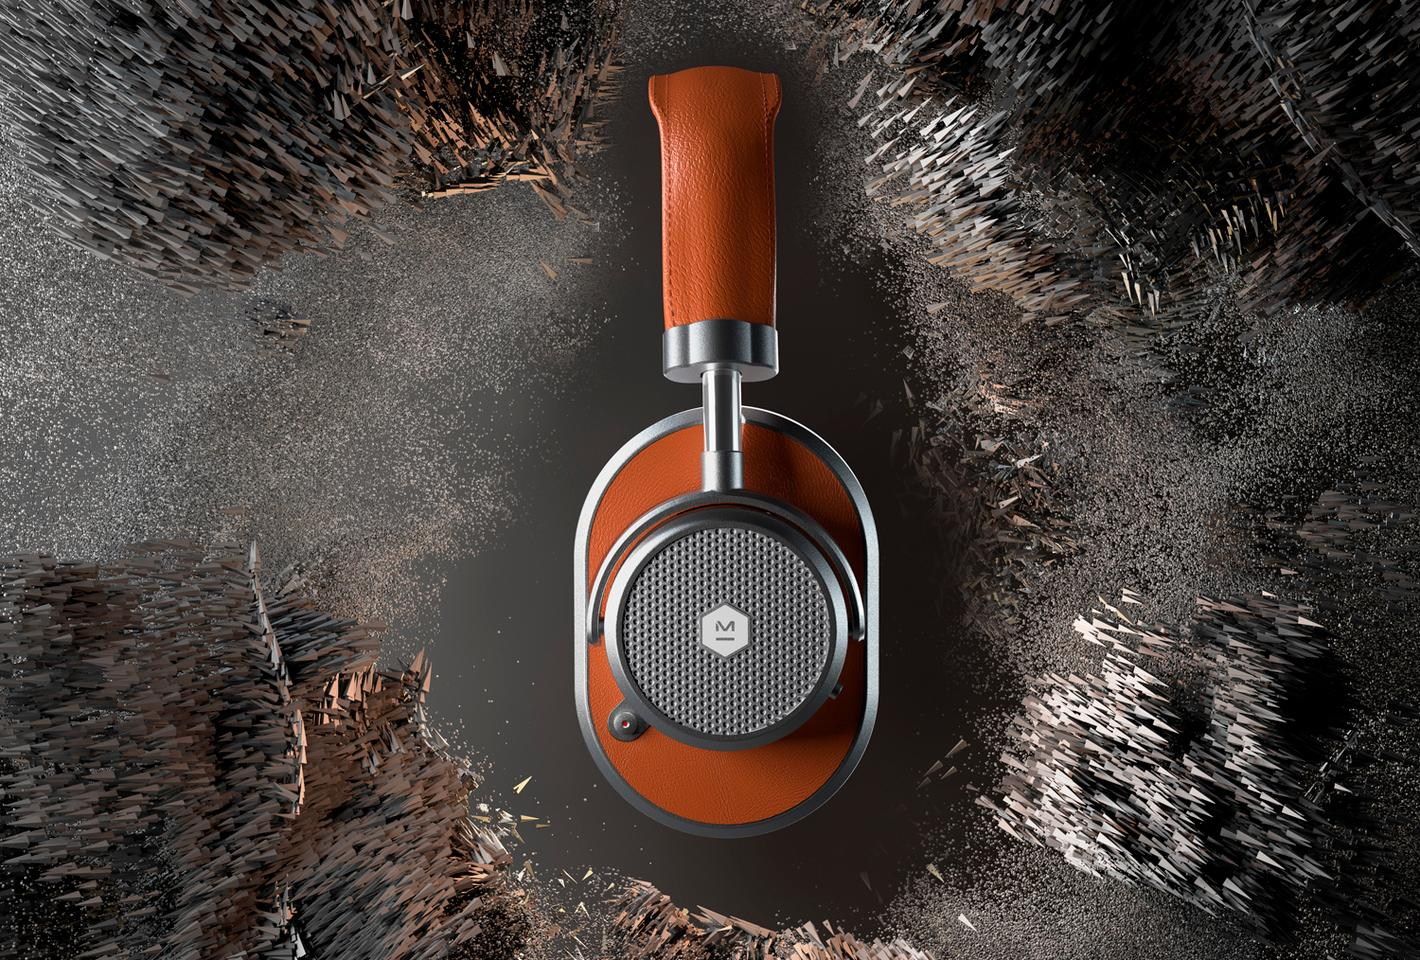 Master & Dynamic has built two active noise canceling modes into the MW65s